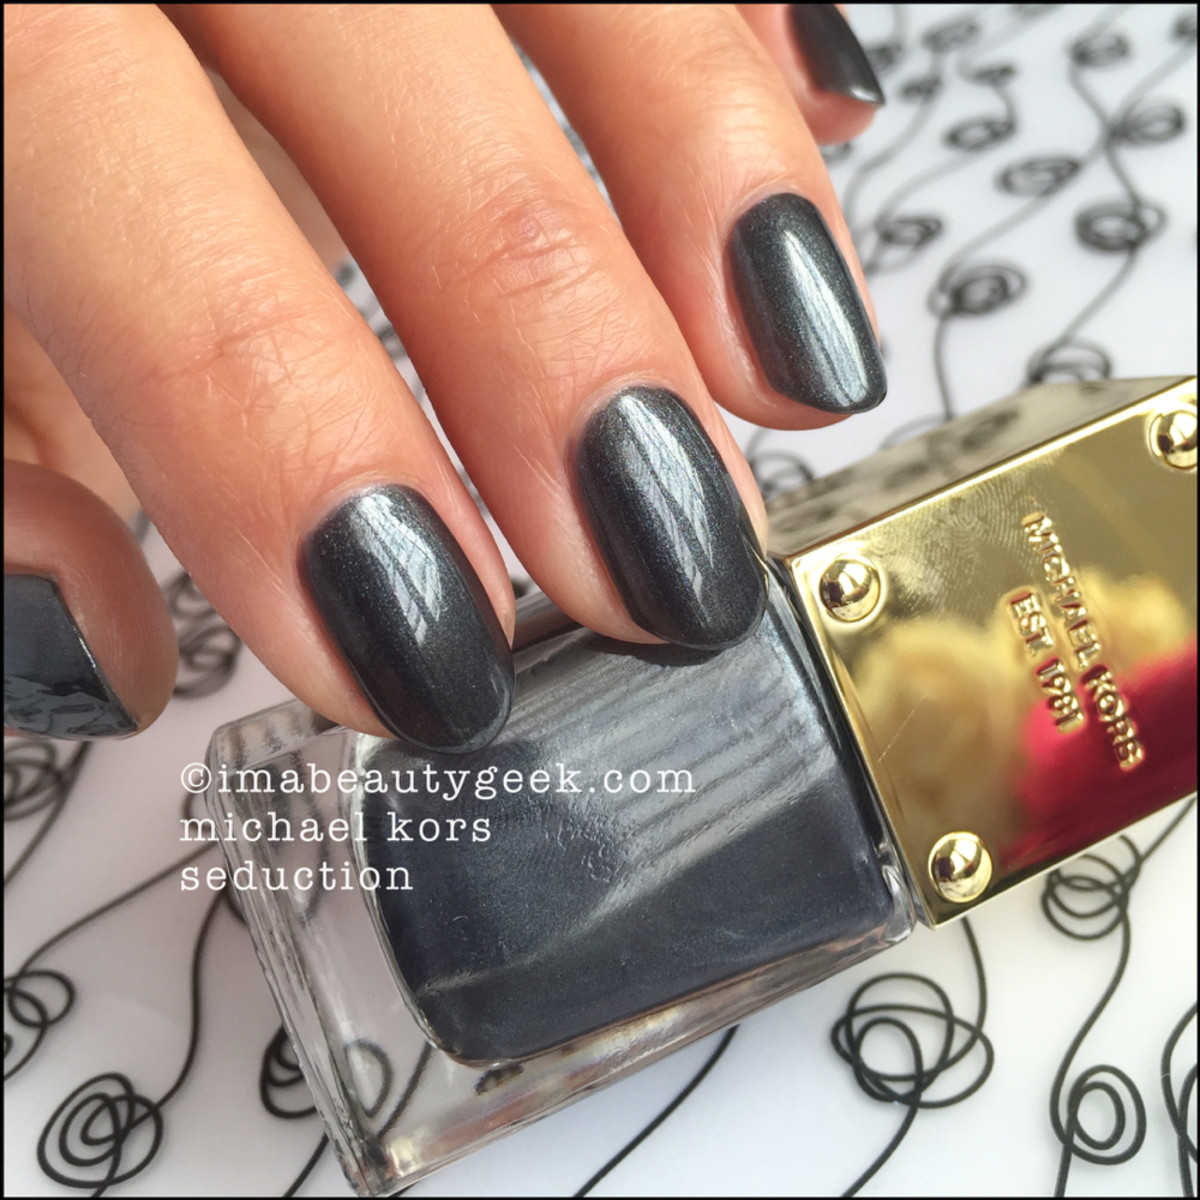 Michael Kors Seduction Nail Polish Swatch Beautygeeks